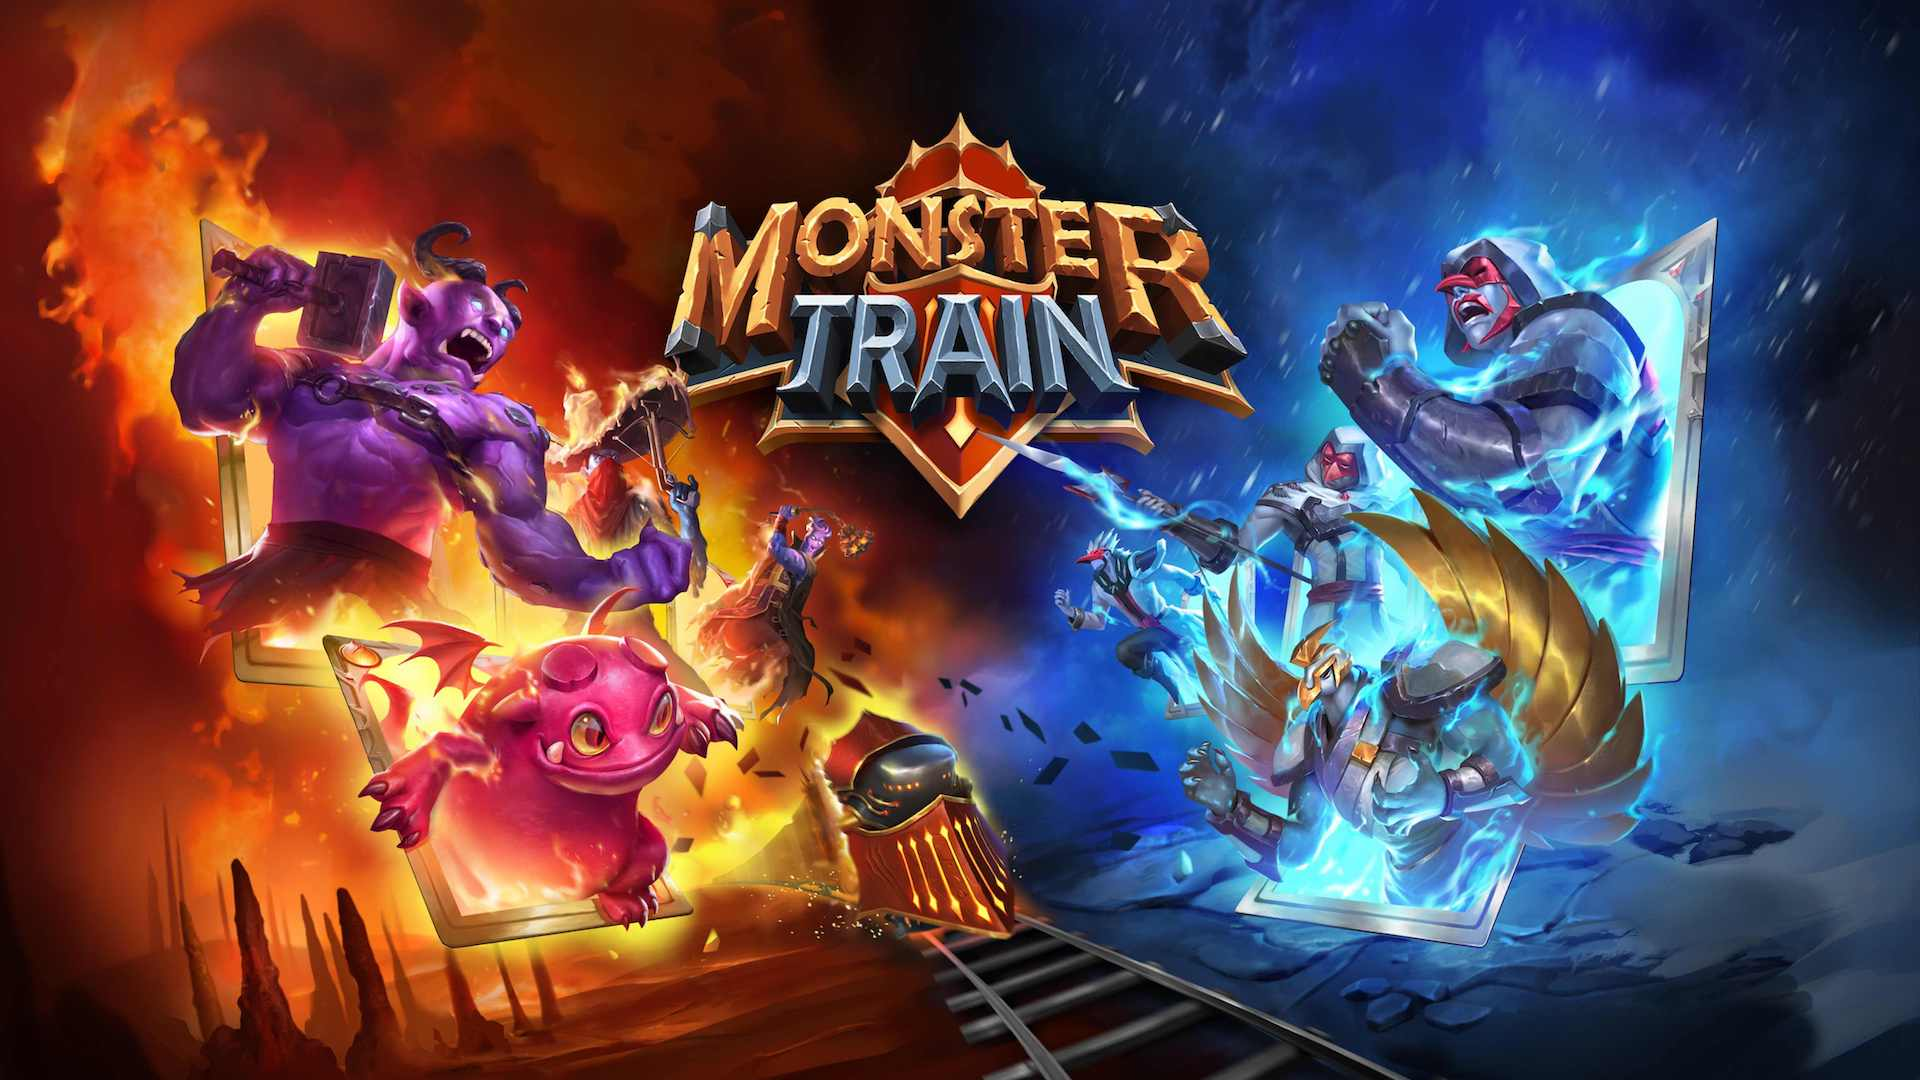 Monster Train Overview